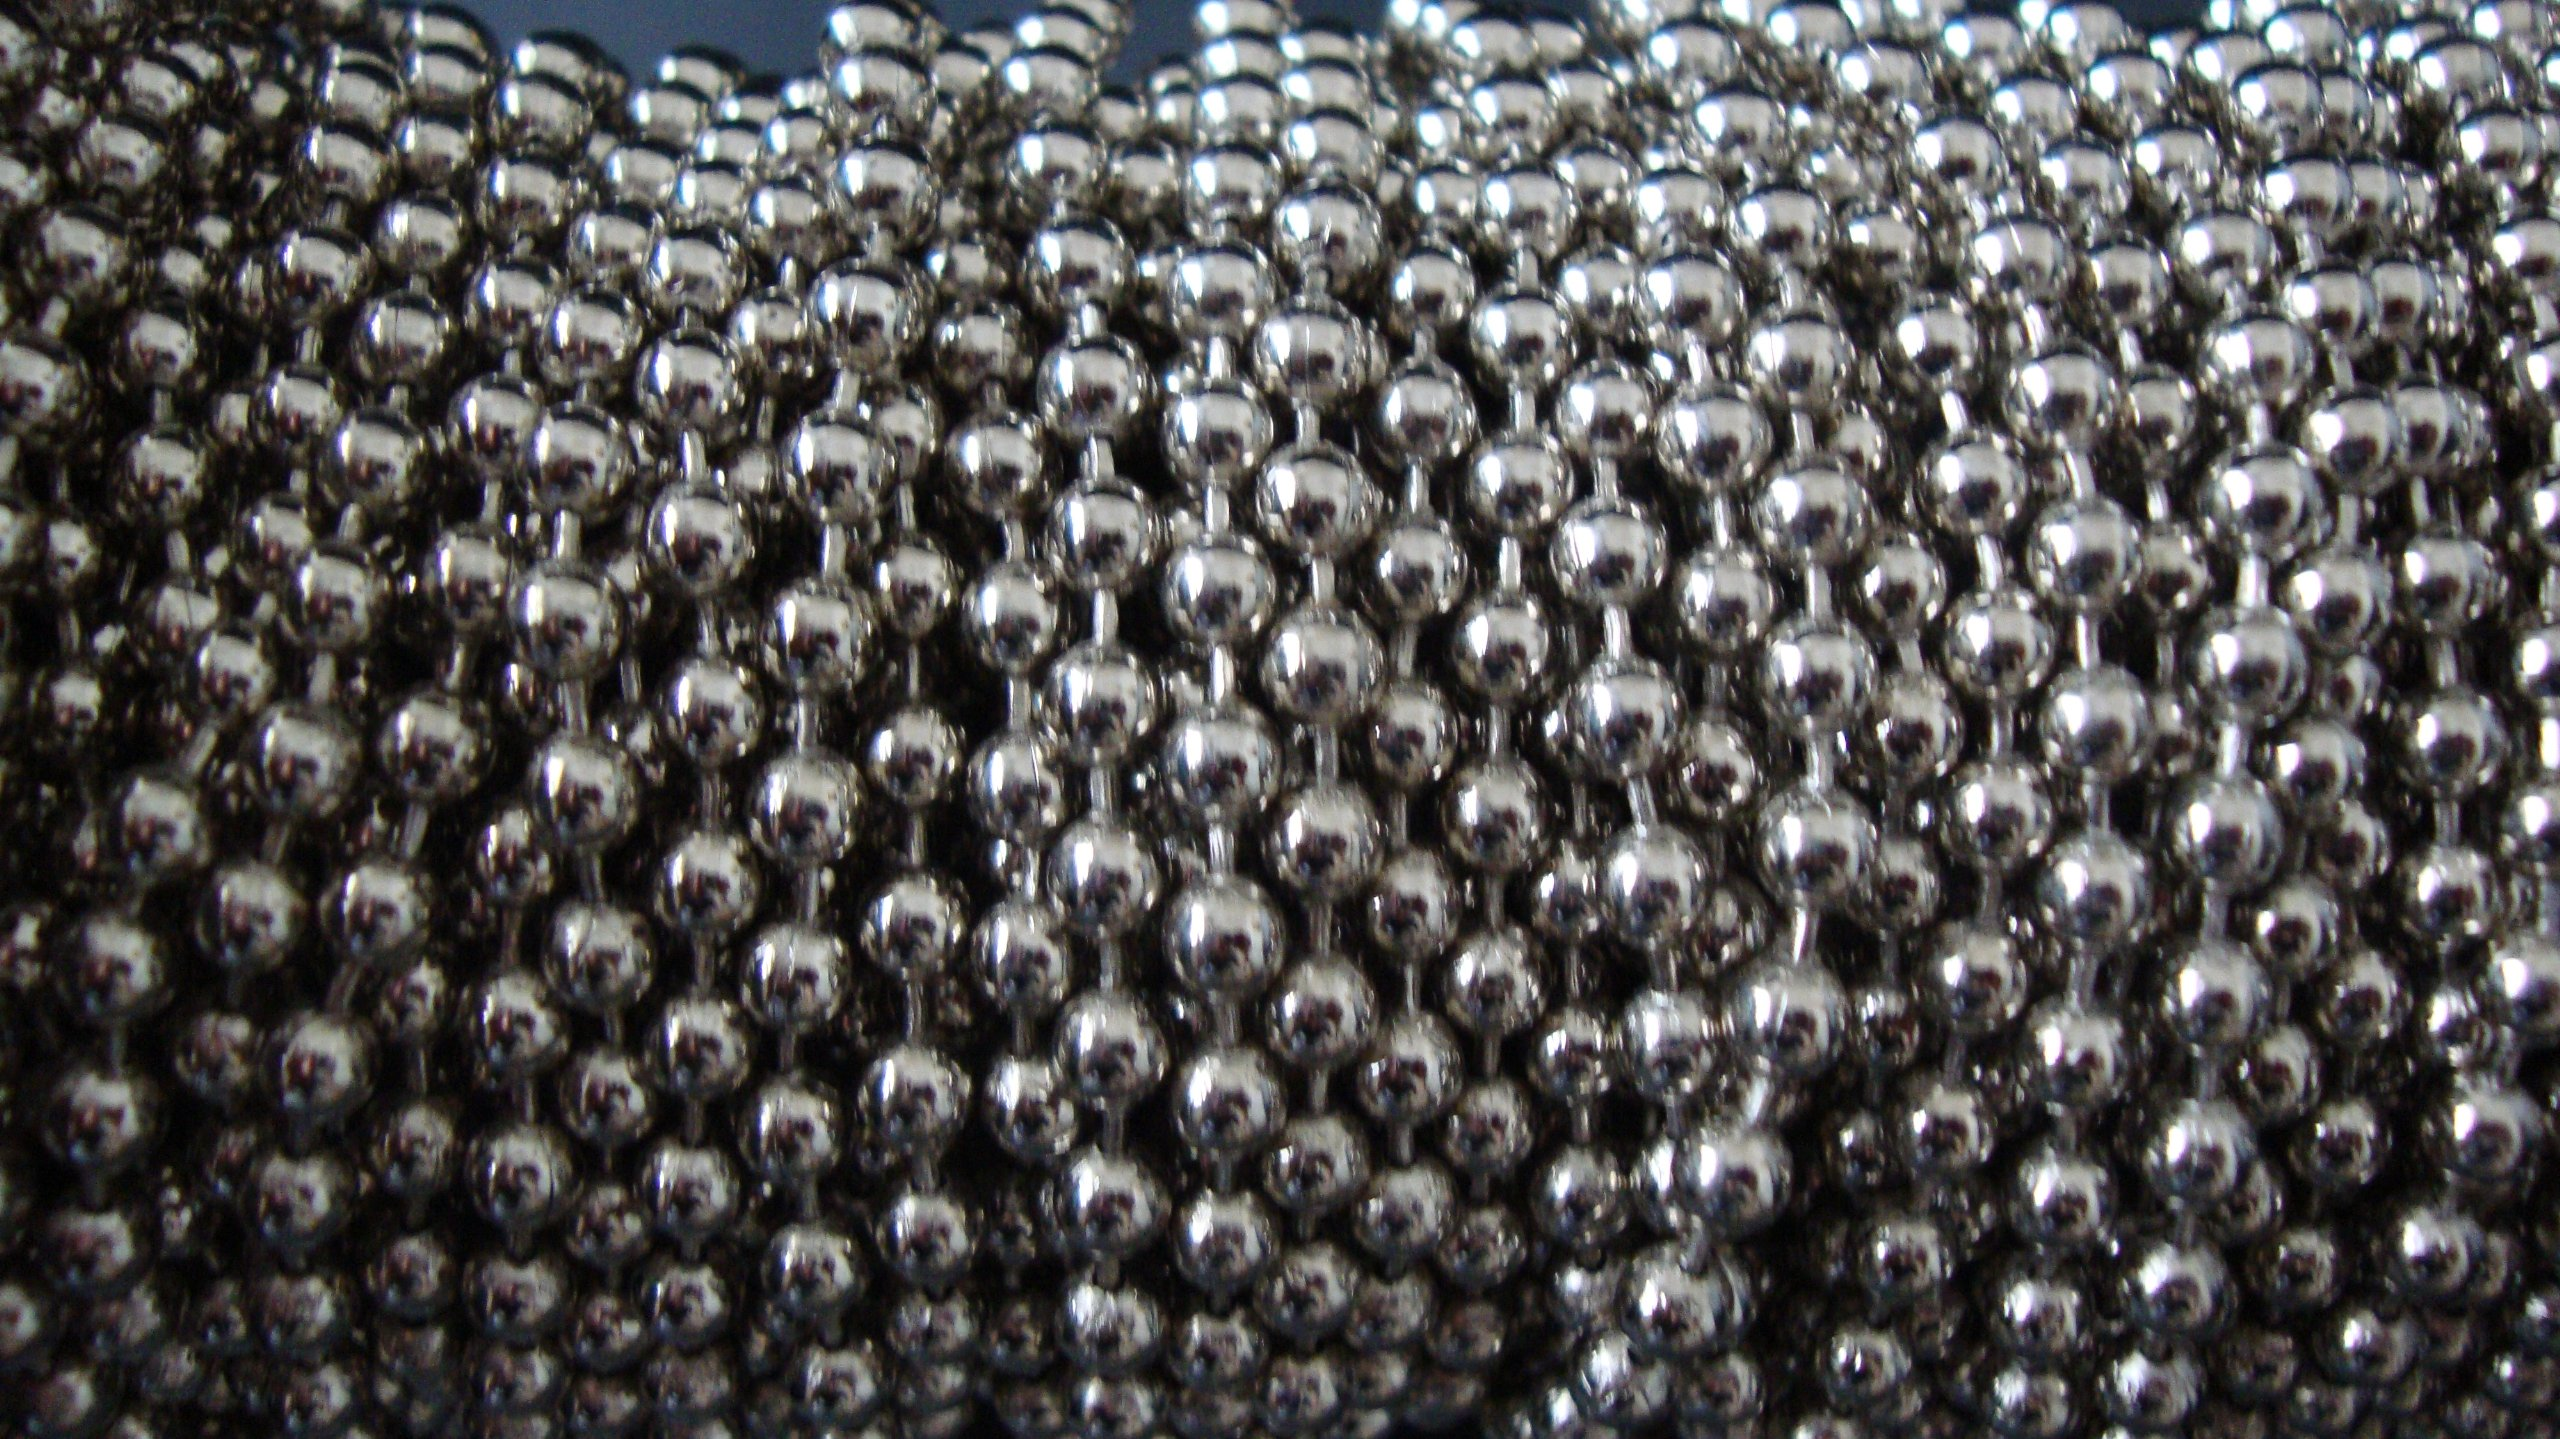 Amazing Drapery Hardware Ball Chain #10 Spool Nickel Plated Steel 30 Feet by Amazing Drapery Hardware